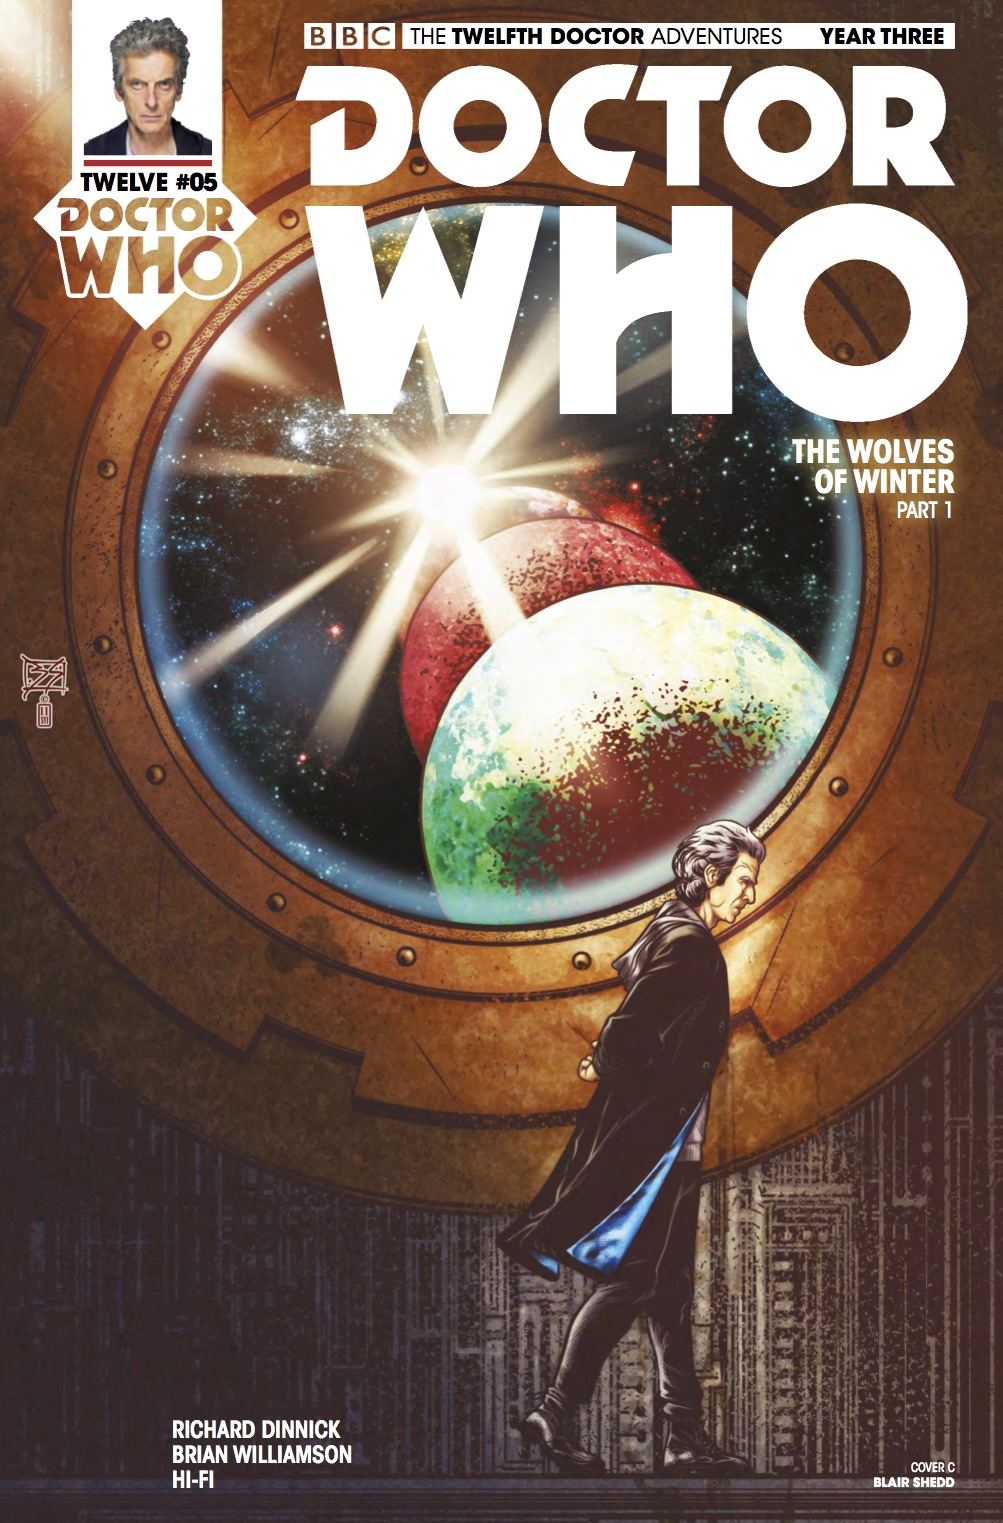 Doctor Who 12th Year Three #5 Cover C (Credit: Titan / Blair ​Shedd)